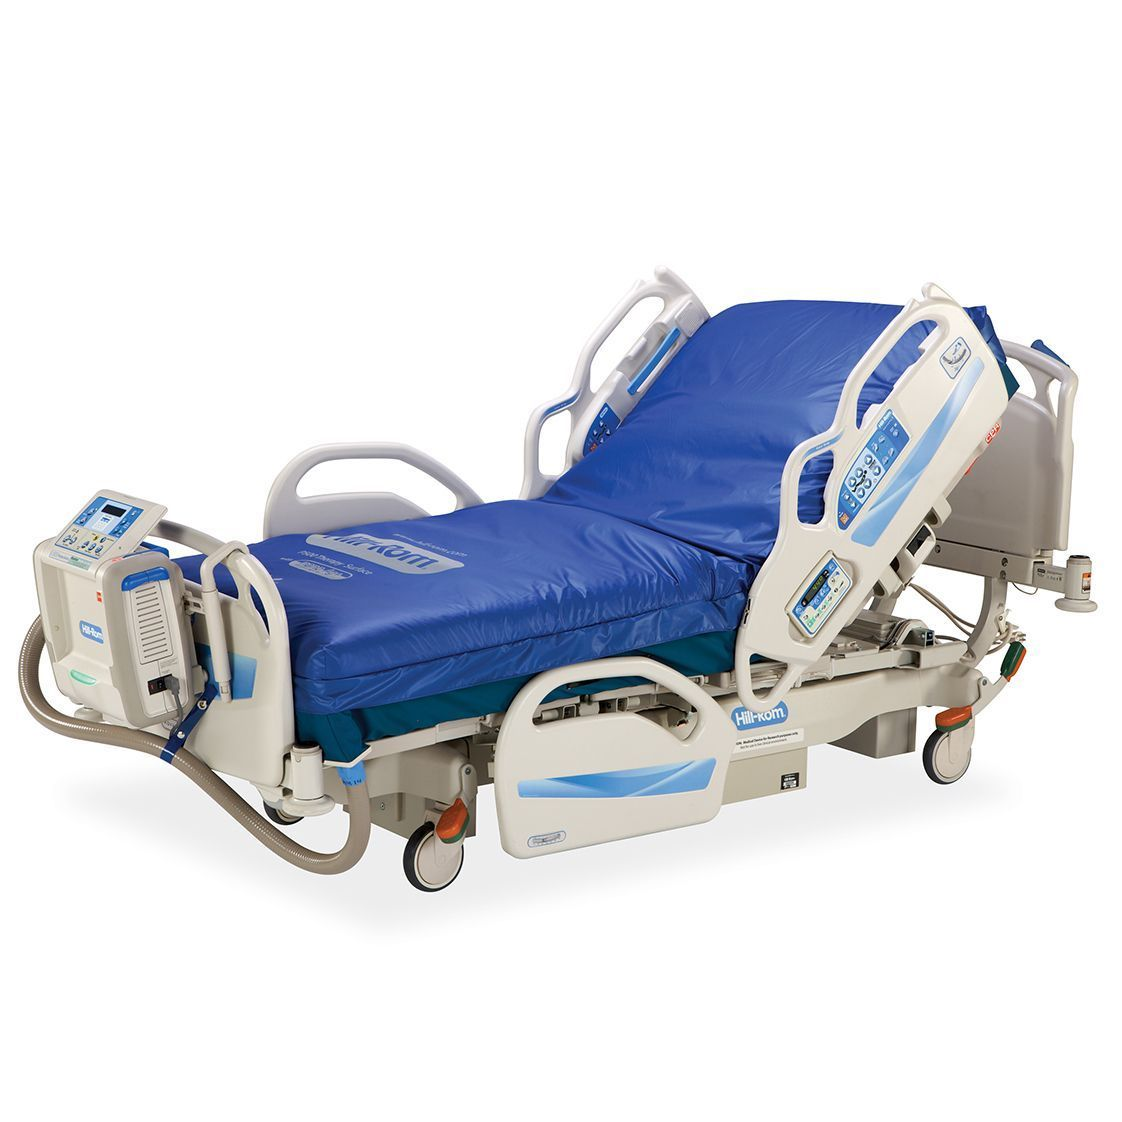 Hill-Rom Advanta 2 Hospital Bed - Certified Reconditioned